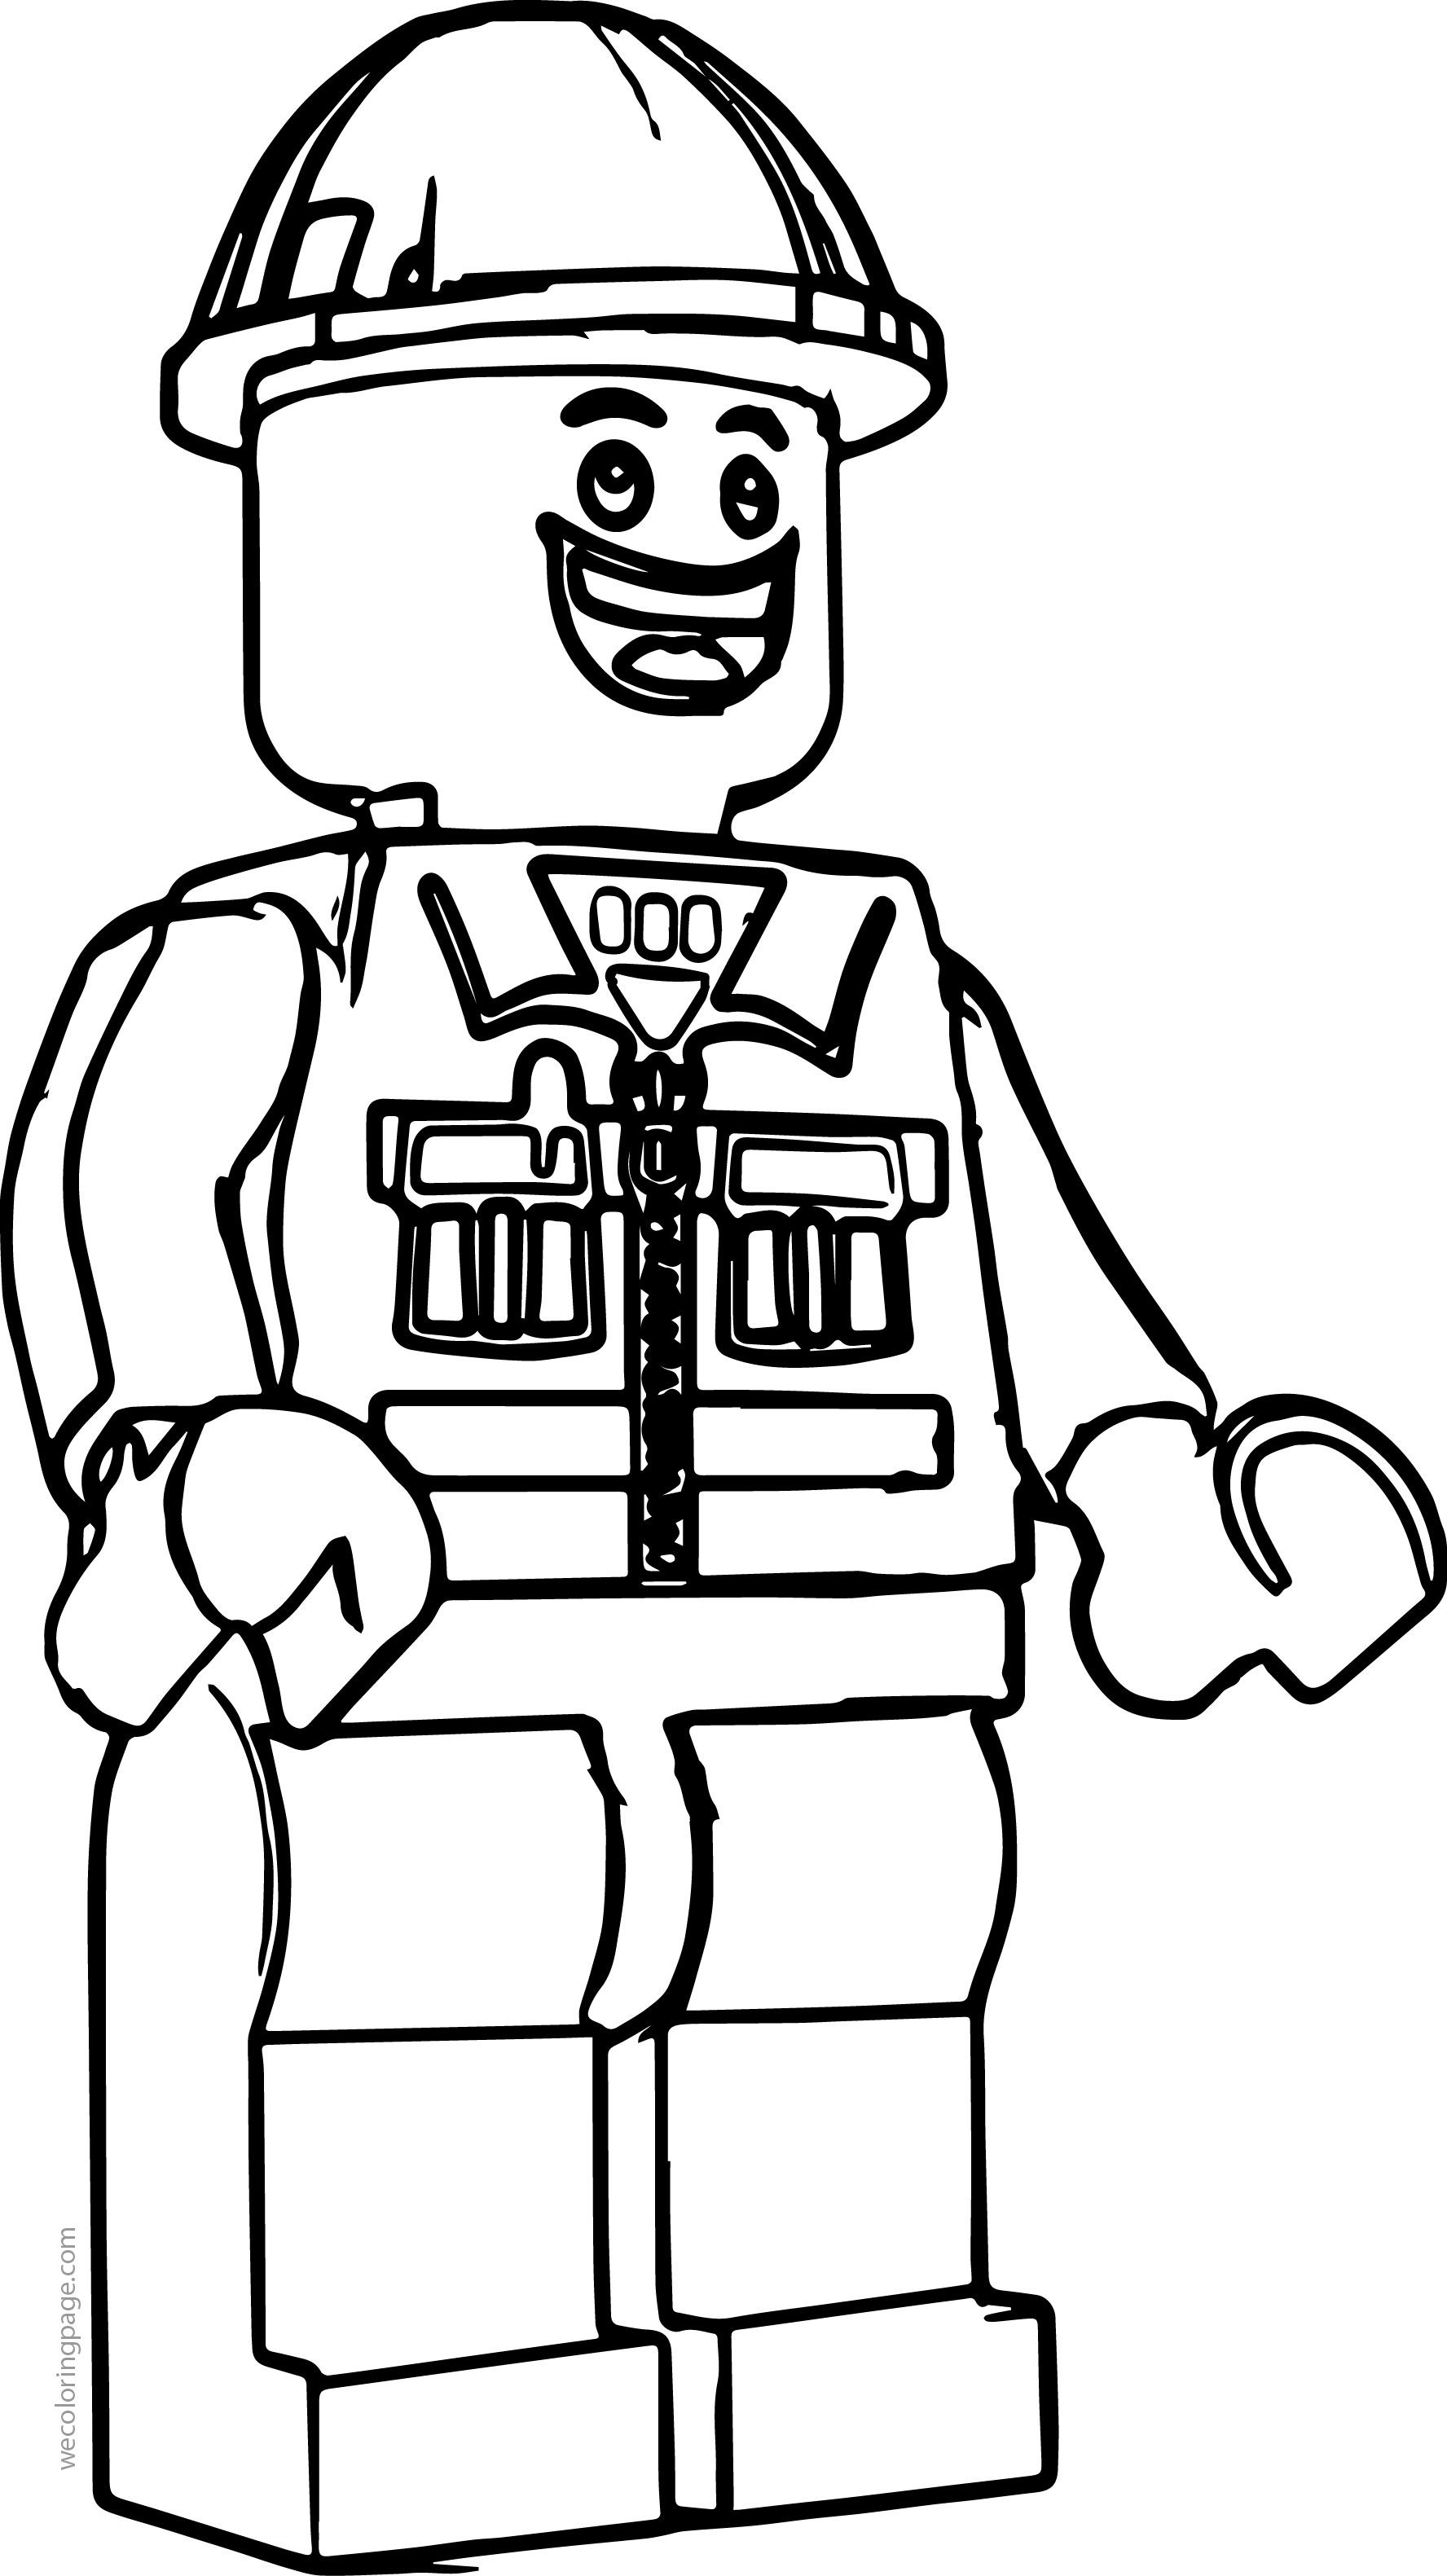 Lego Construction Worker Coloring Page | wecoloringpage | Pinterest ...